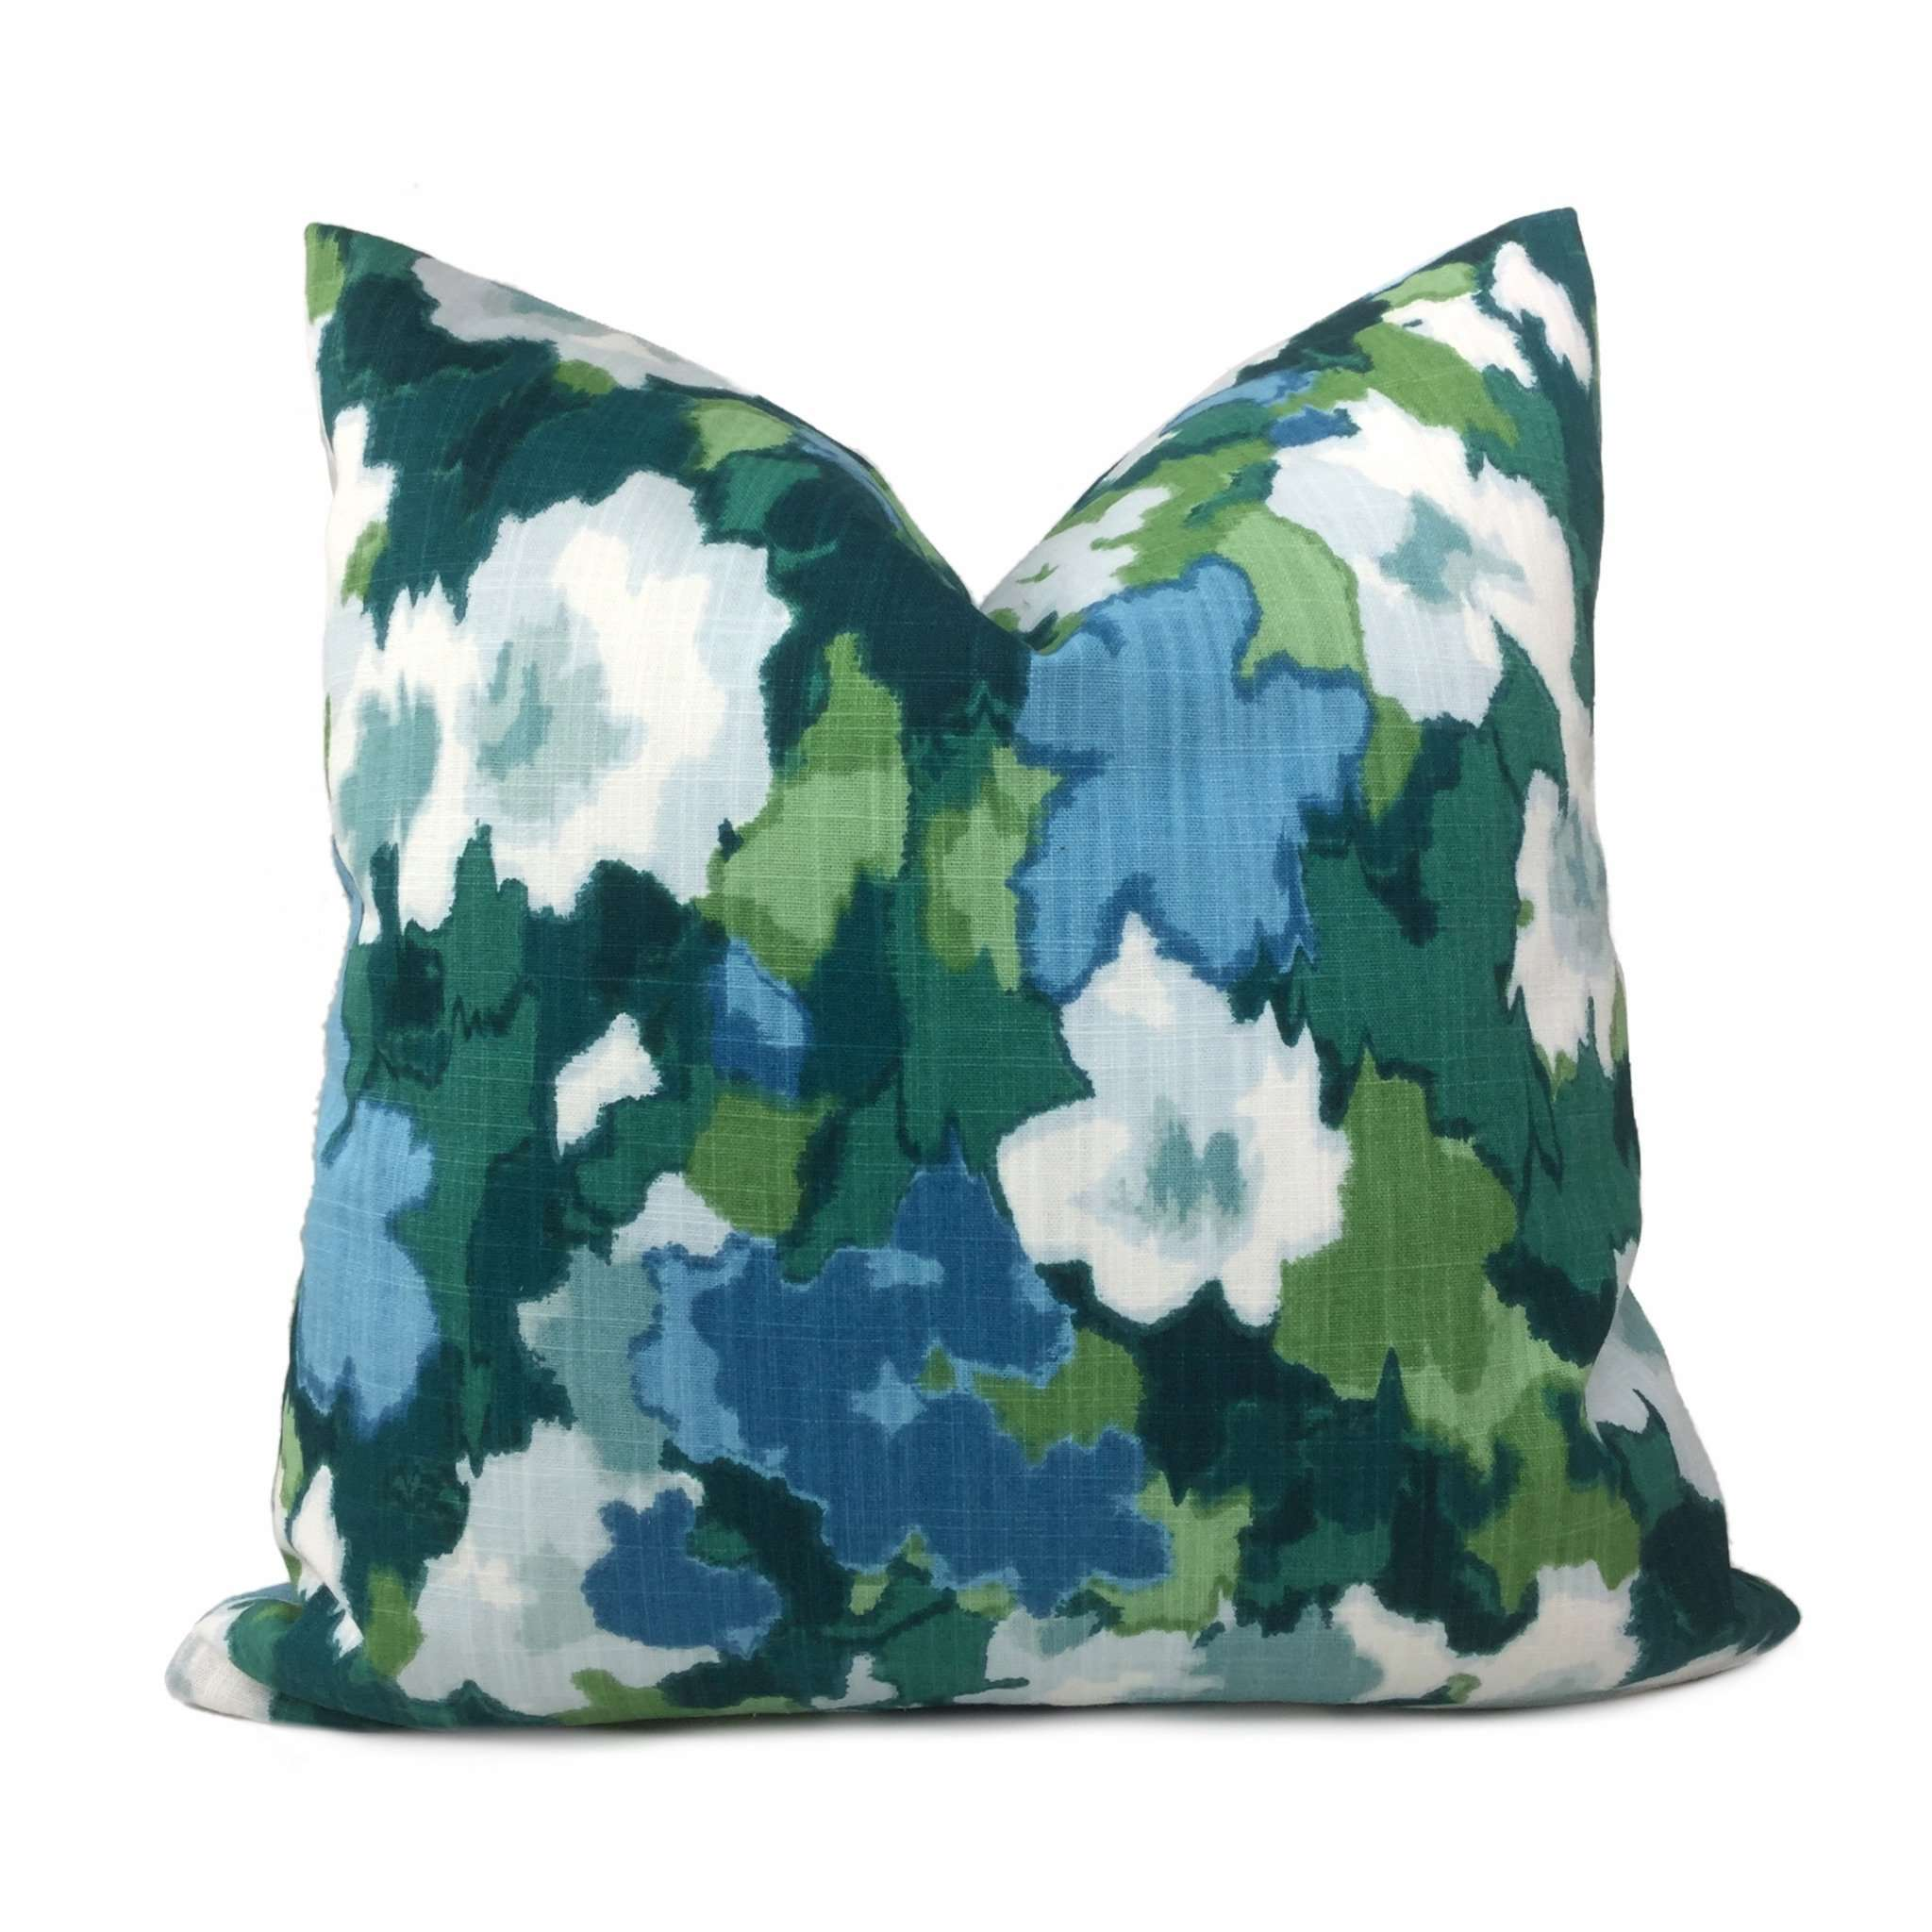 Robert Allen Madcap Cottage Rousham Romp Green Blue Impressionist Floral Pillow Cover Cushion Pillow Case Euro Sham 16x16 18x18 20x20 22x22 24x24 26x26 28x28 Lumbar Pillow 12x18 12x20 12x24 14x20 16x26 by Aloriam